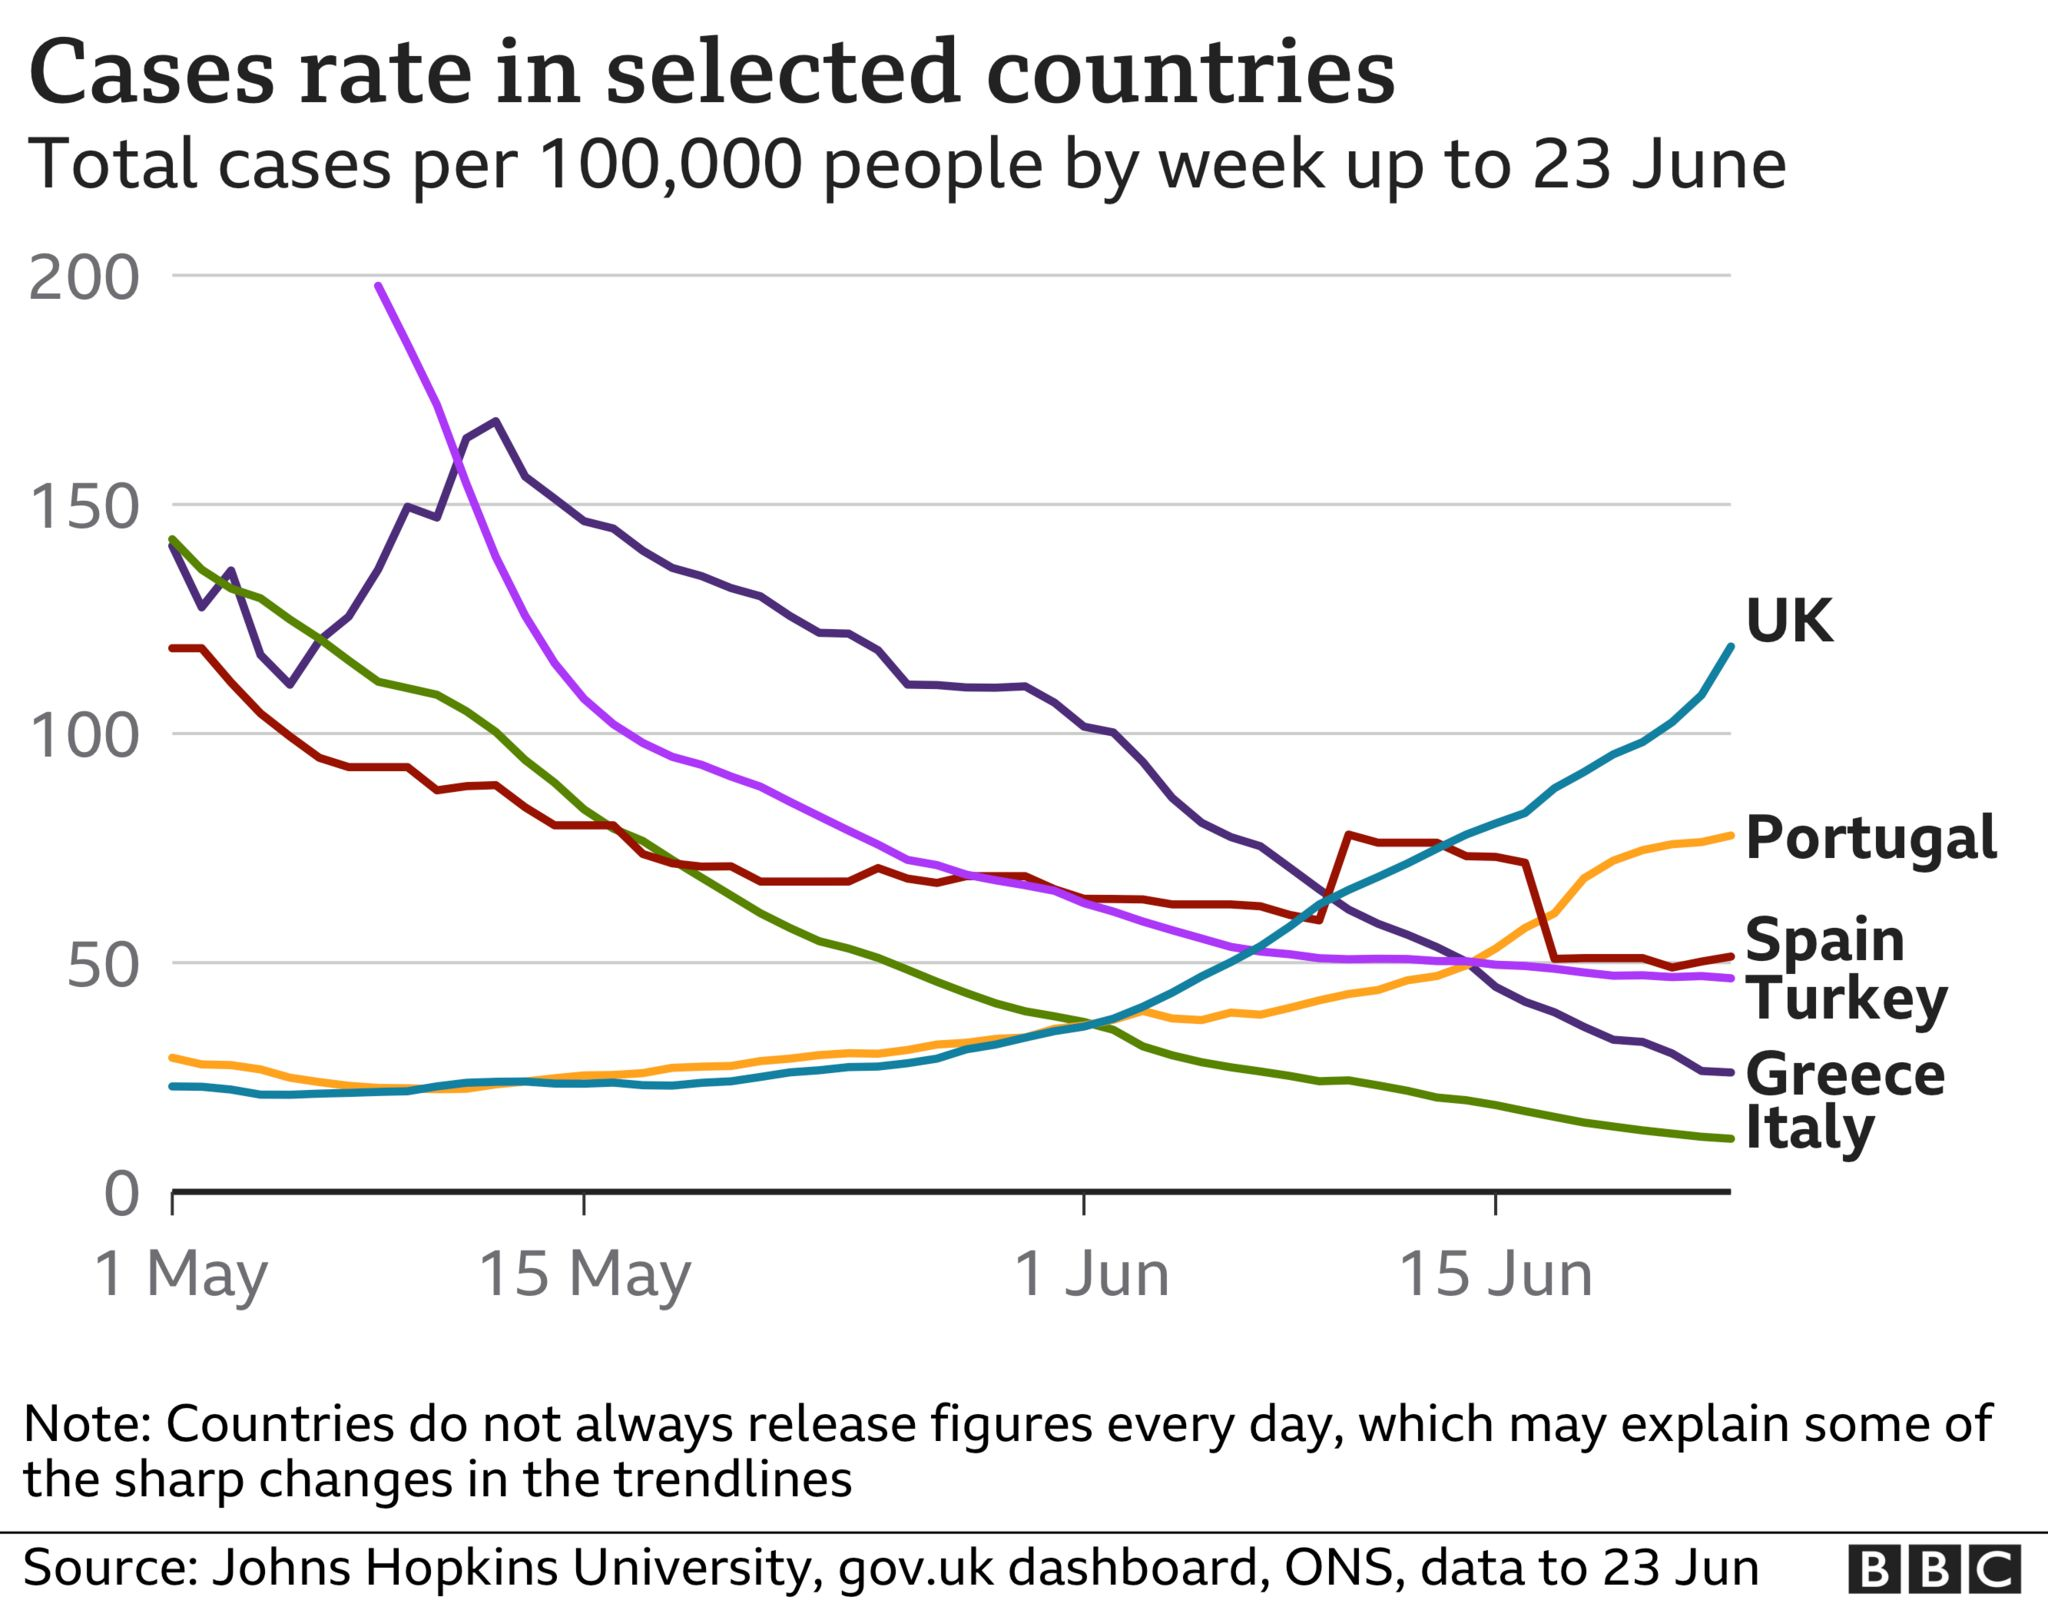 Graph showing cases rate in selected countries